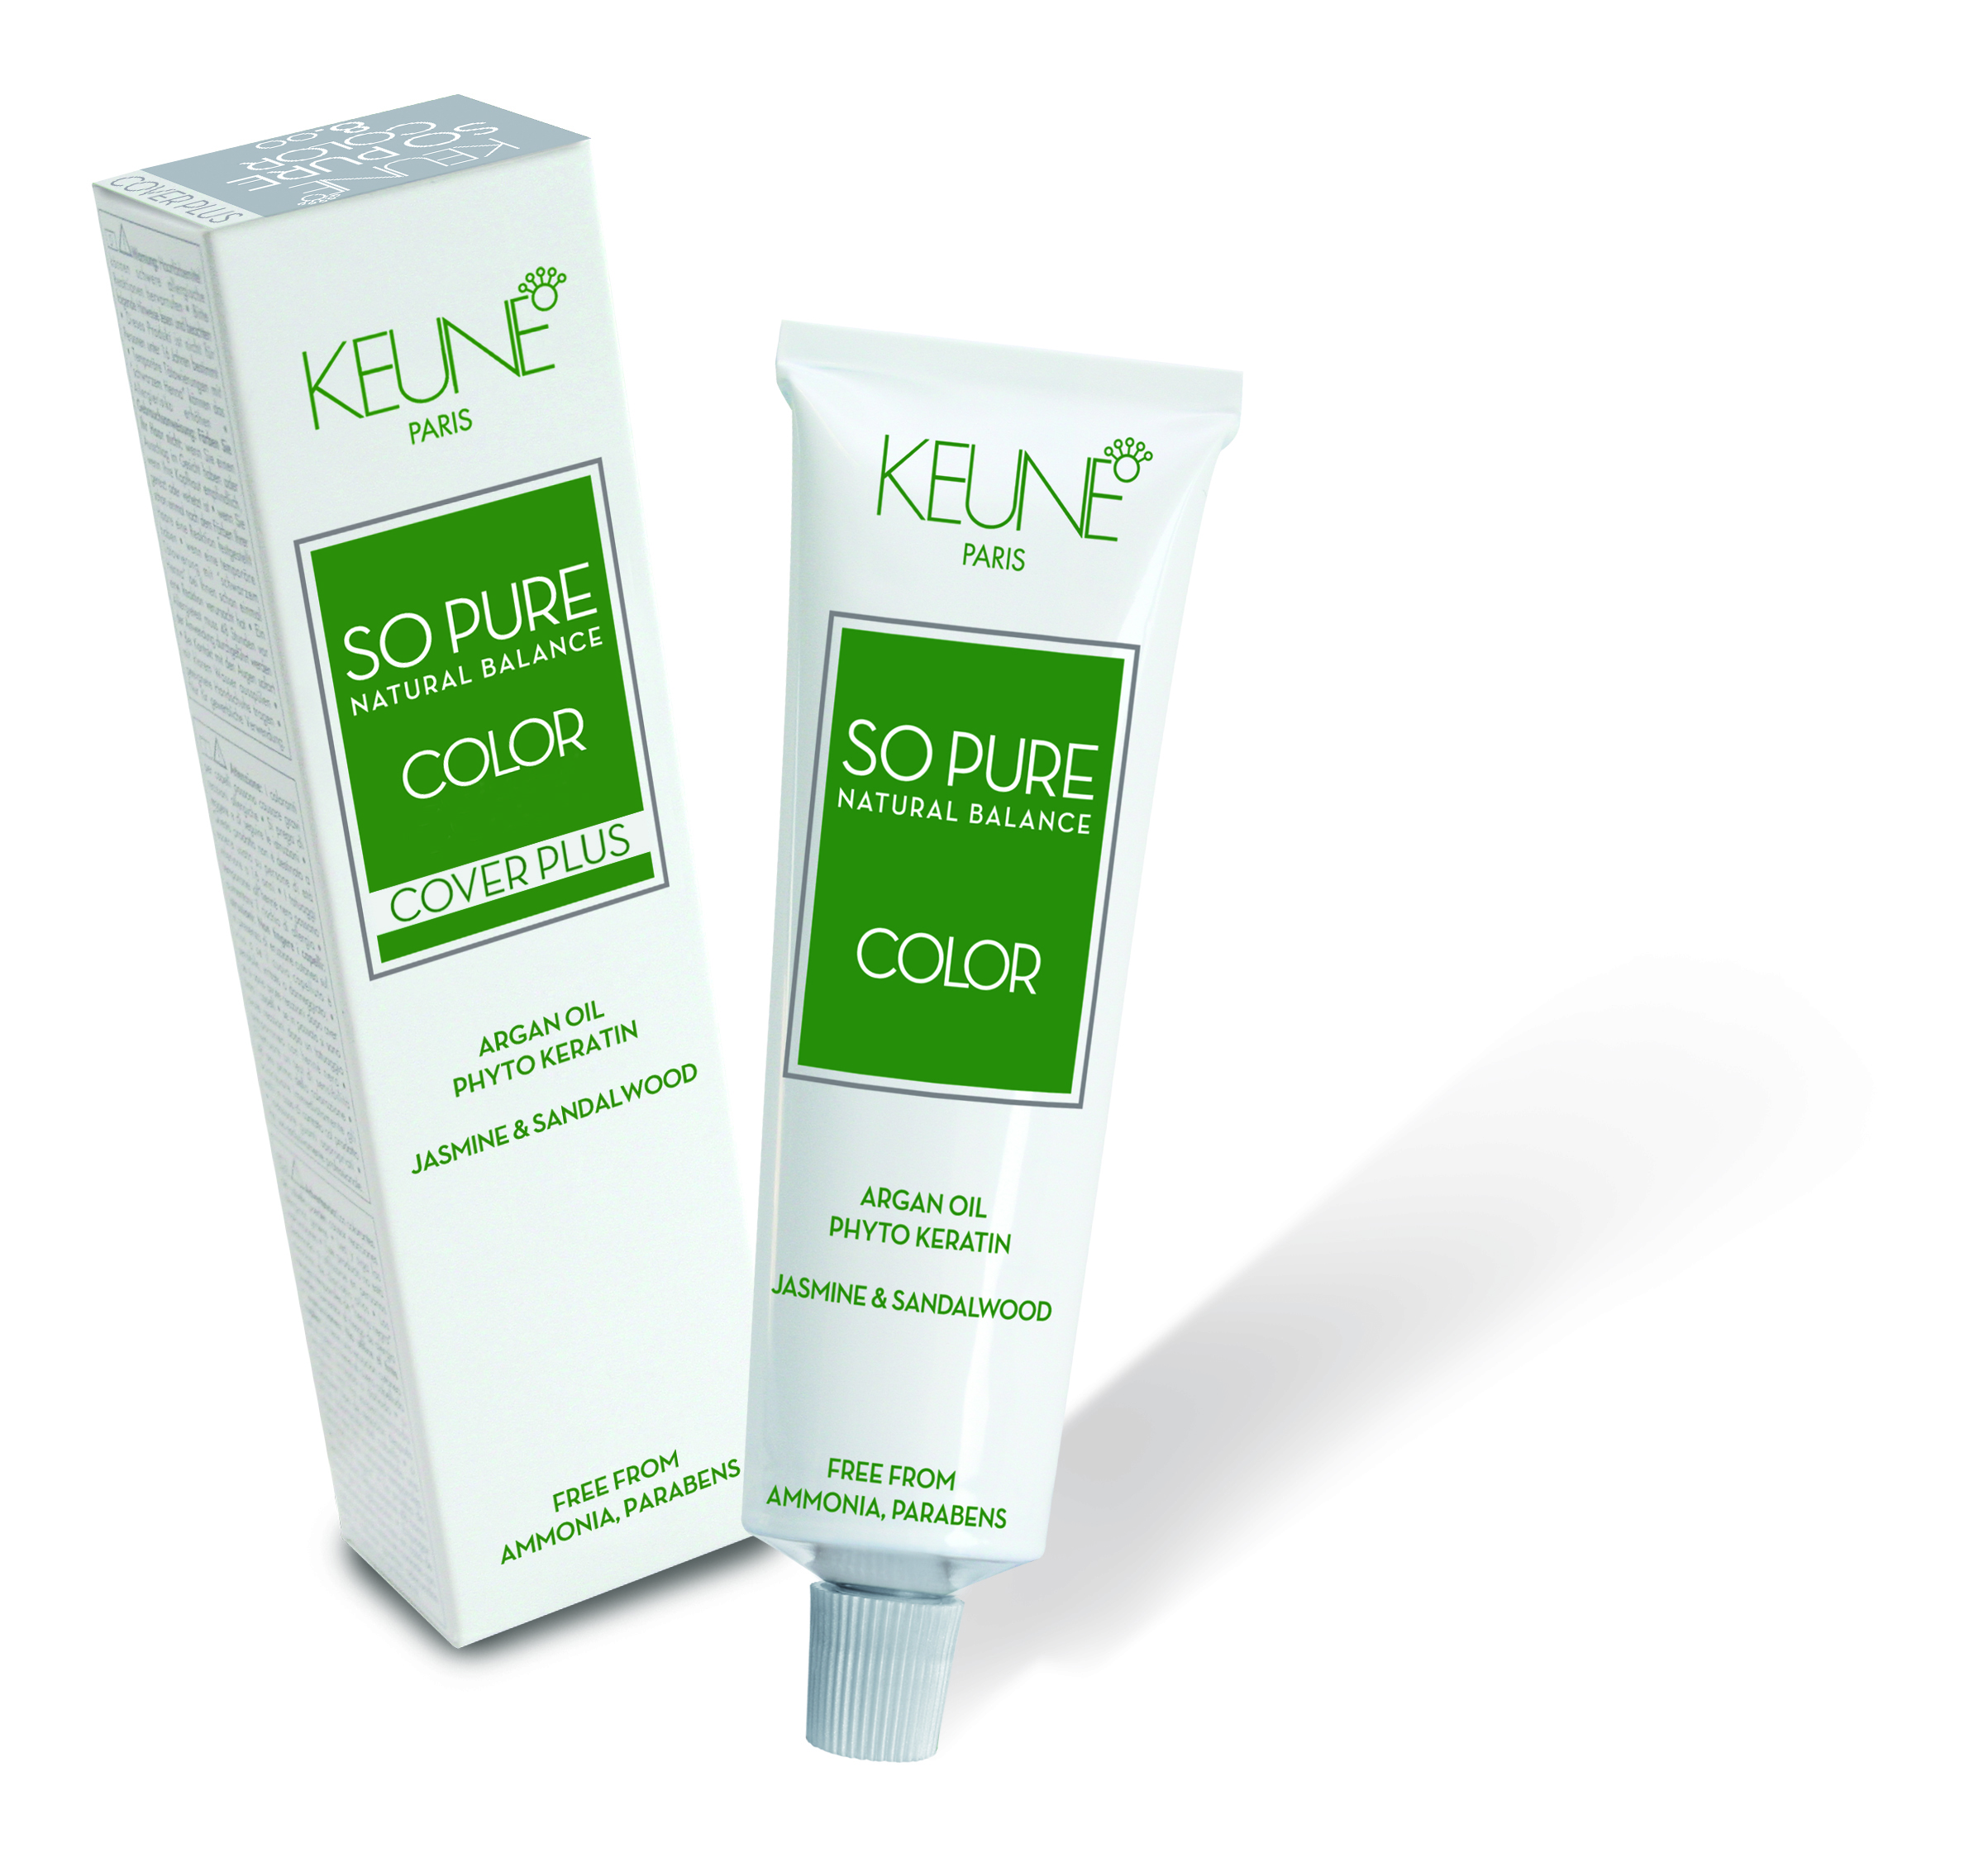 Keune Haircosmetics North America Launches New So Pure Luminous Pearl Collection and Three New So Pure Cover Plus Shades